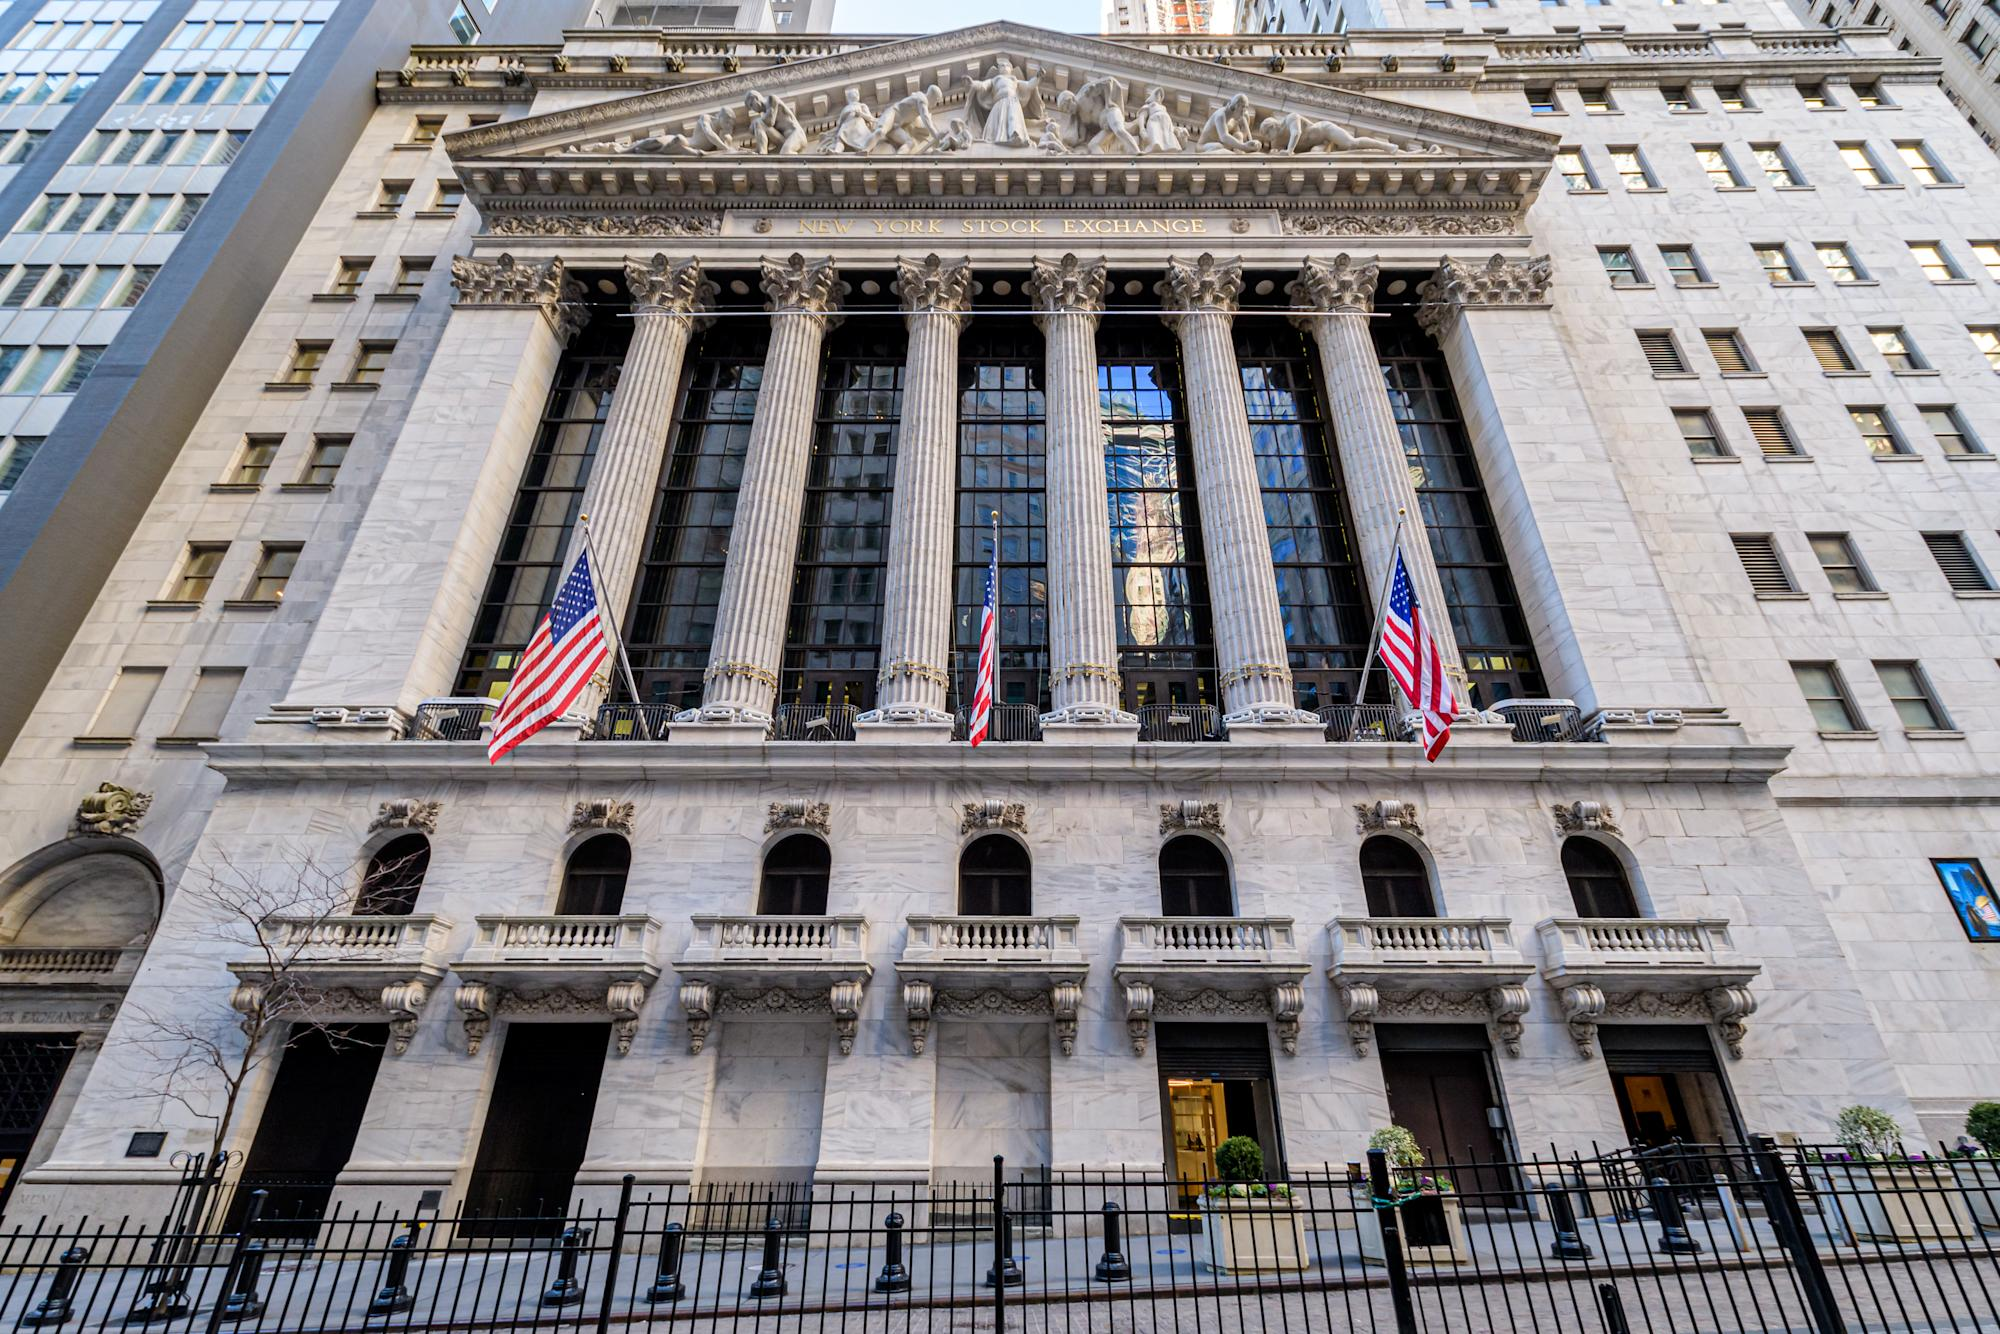 Stock market news live updates: Stock futures rise after record-settin... image